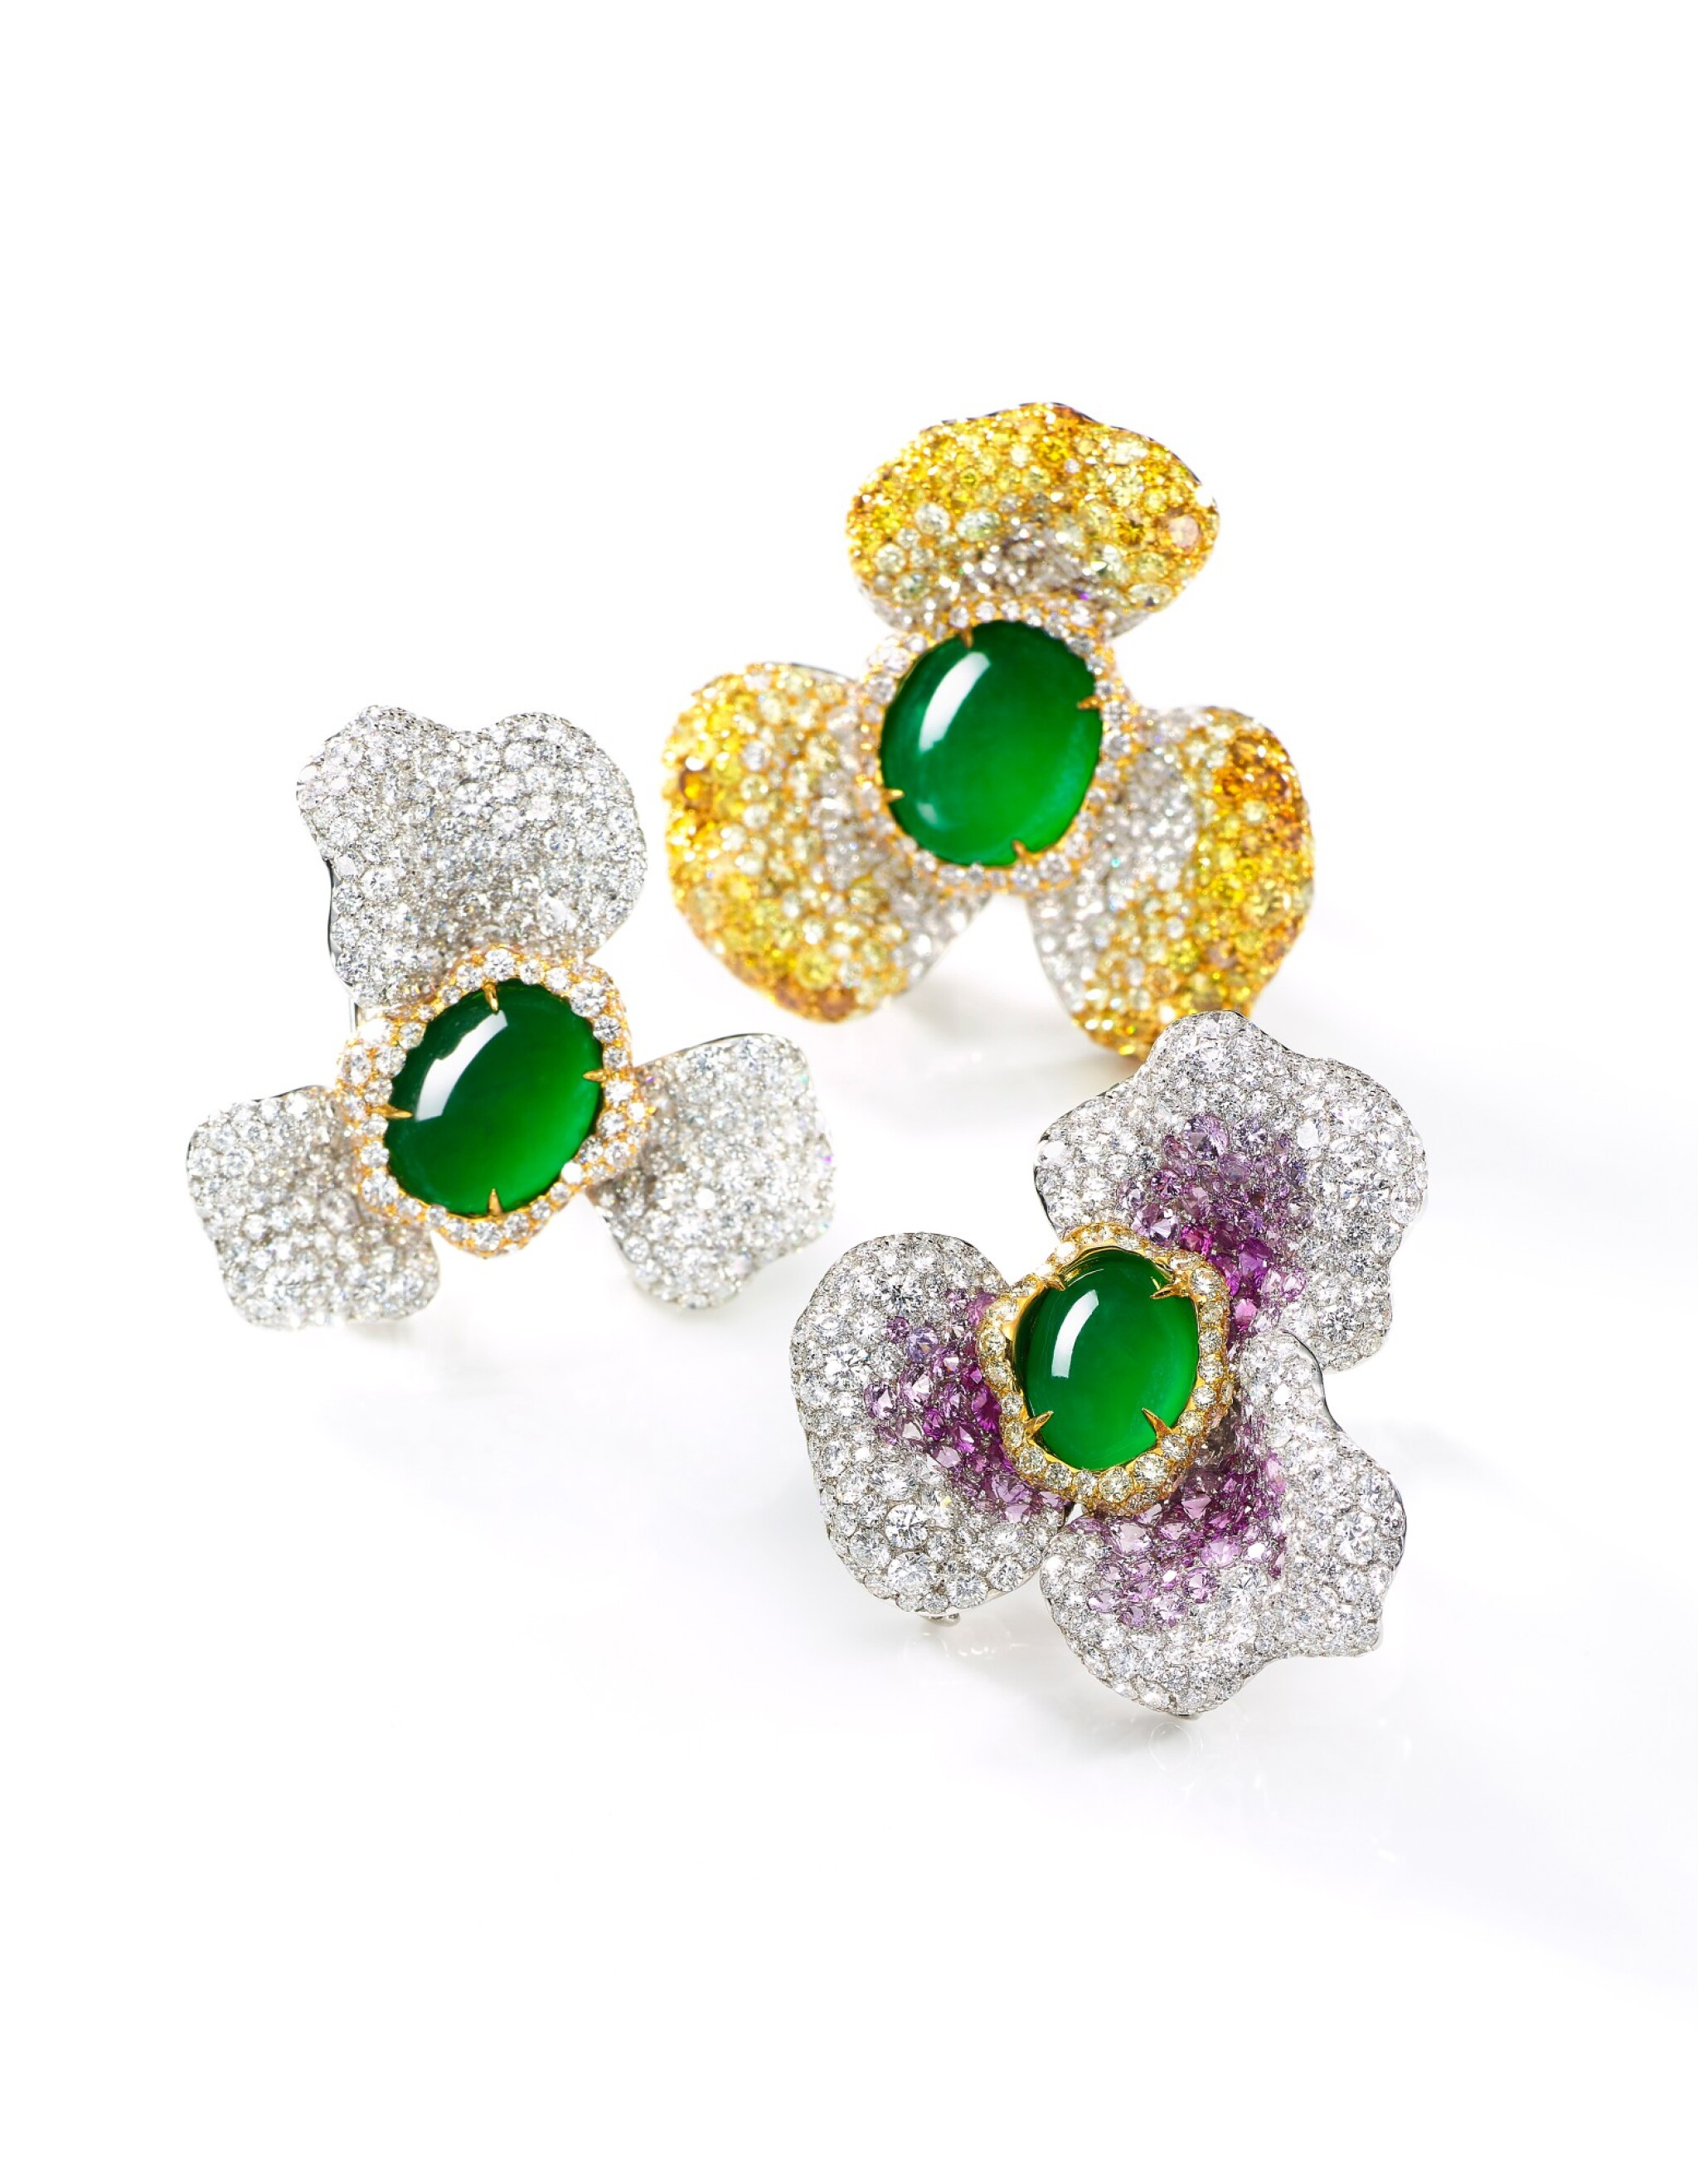 View full screen - View 1 of Lot 1744. CINDY CHAO | SET OF THREE JADEITE, DIAMOND AND PINK SAPPHIRE BROOCHES | 趙心綺 | 天然翡翠 配 鑽石 及 粉紅剛玉 胸針 一組三件.